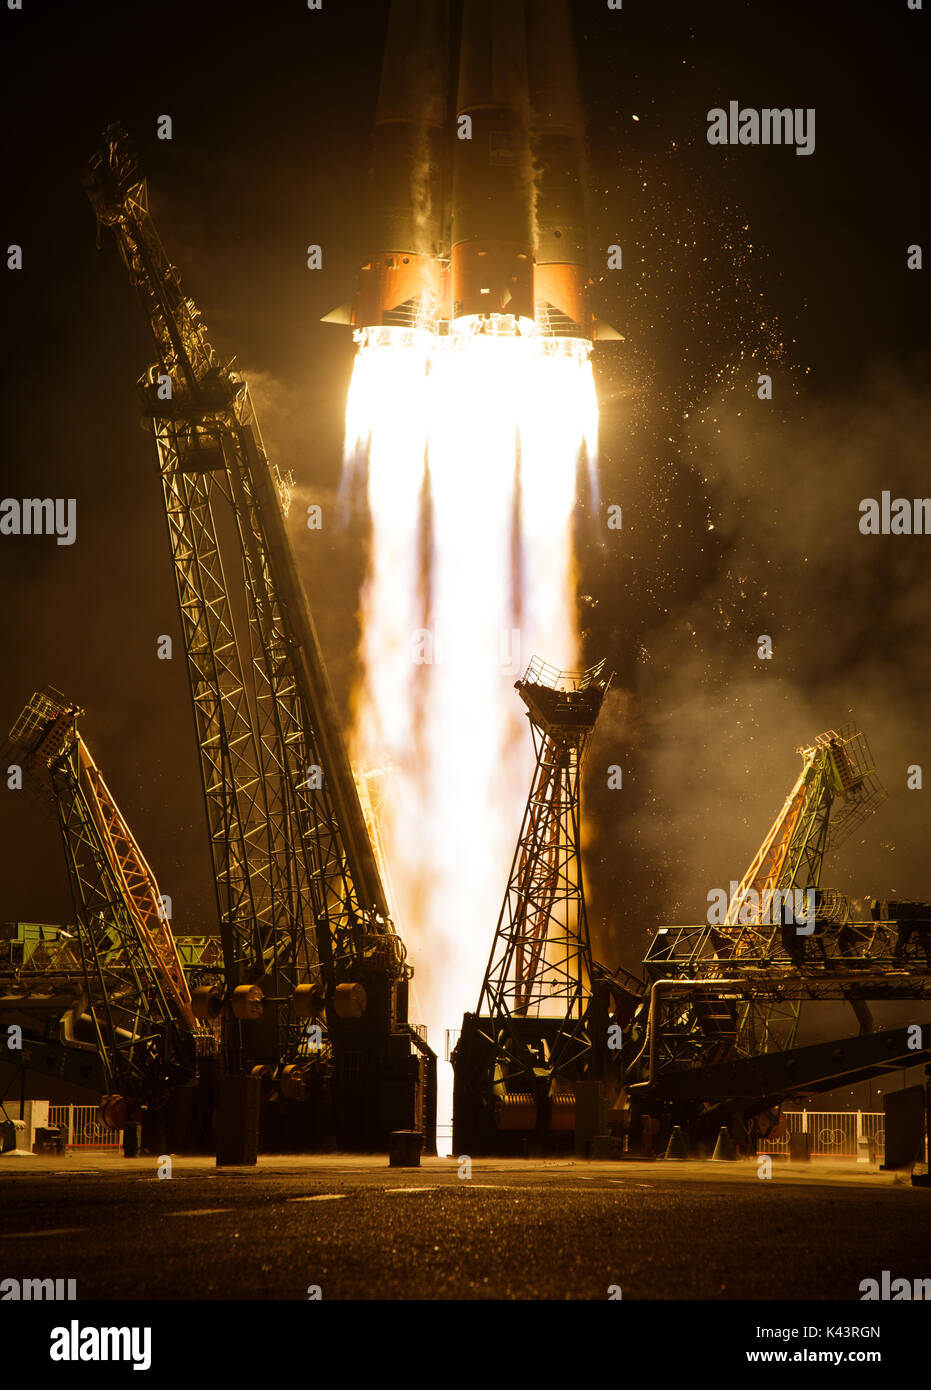 The Soyuz MS-05 spacecraft launches to the NASA International Space Station for Expedition 52 at the Baikonur Cosmodrome July 28, 2017 in Baikonur, Kazakhstan.  (photo by Joel Kowsky  via Planetpix) - Stock Image